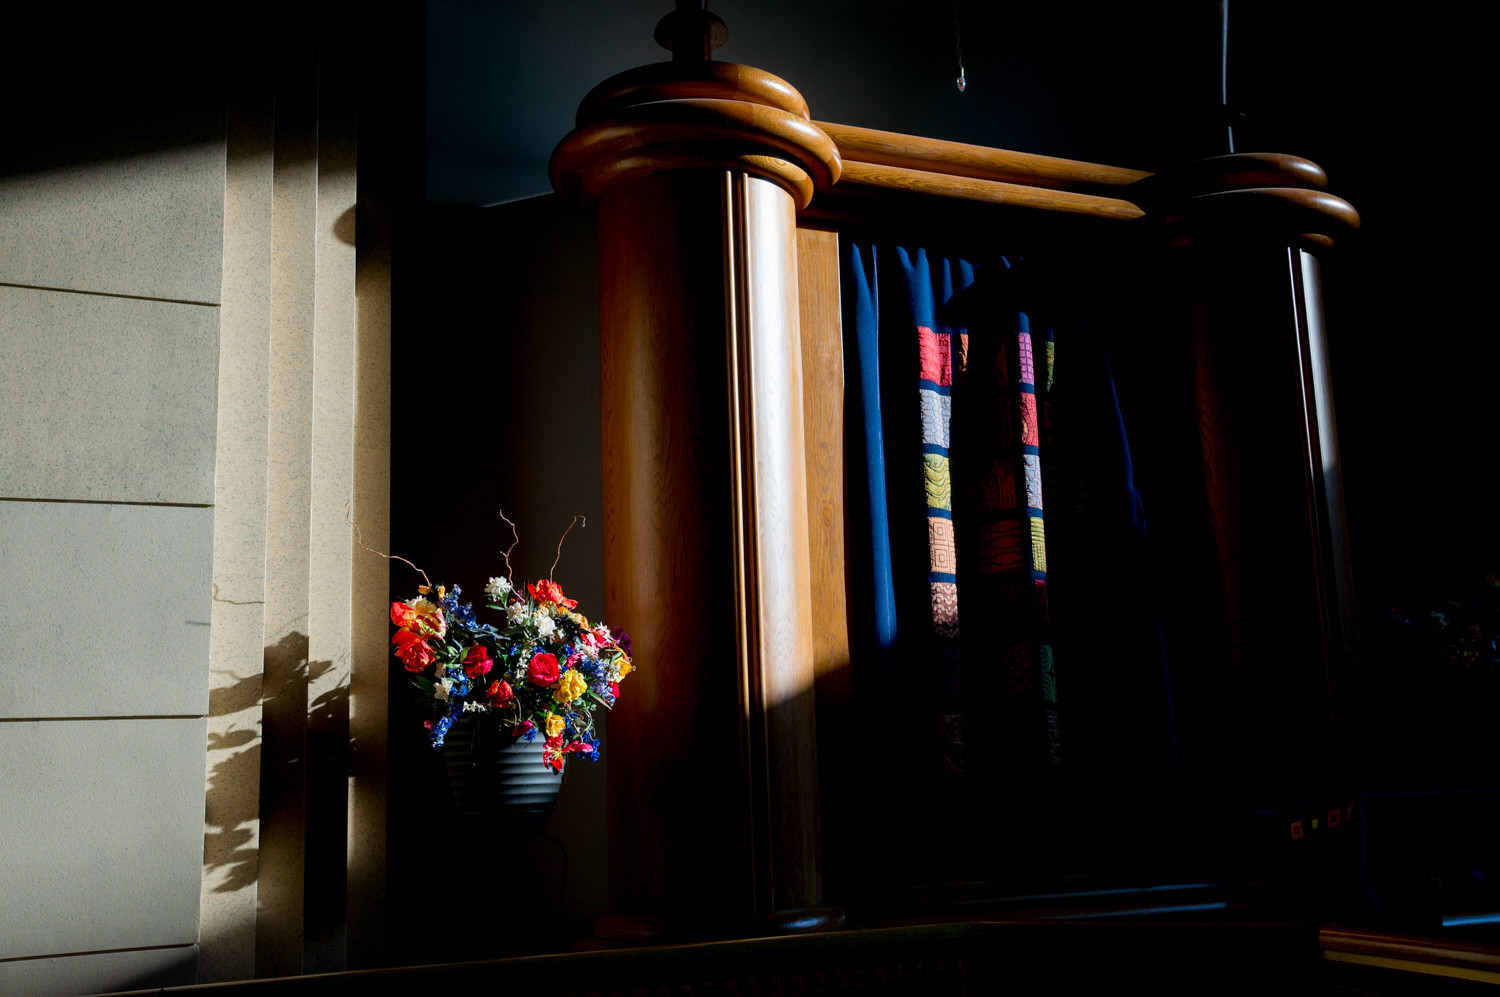 The ark holds sacred Torah scrolls at the Hebrew Institute of Riverdale. The synagogue will no longer congratulate same-sex couples on their marriages in its member newsletter in accordance with a new policy prescribed by the Orthodox Union, the largest association of Orthodox synagogues in the United States.